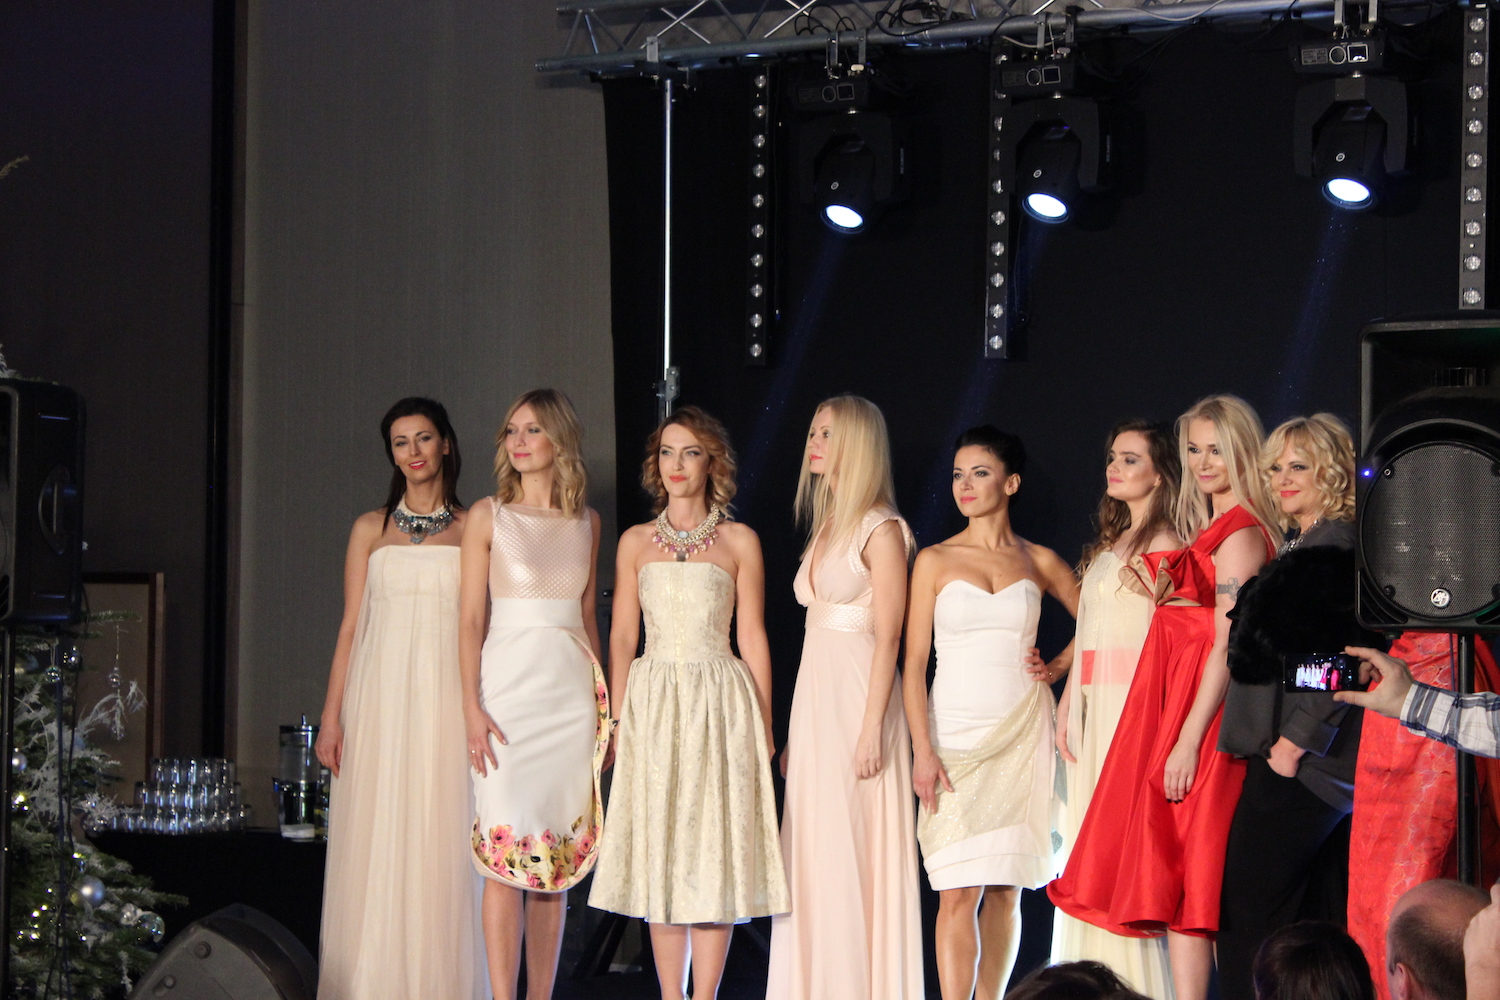 Oasis Spa Salon At The Fashion Show In Warsaw